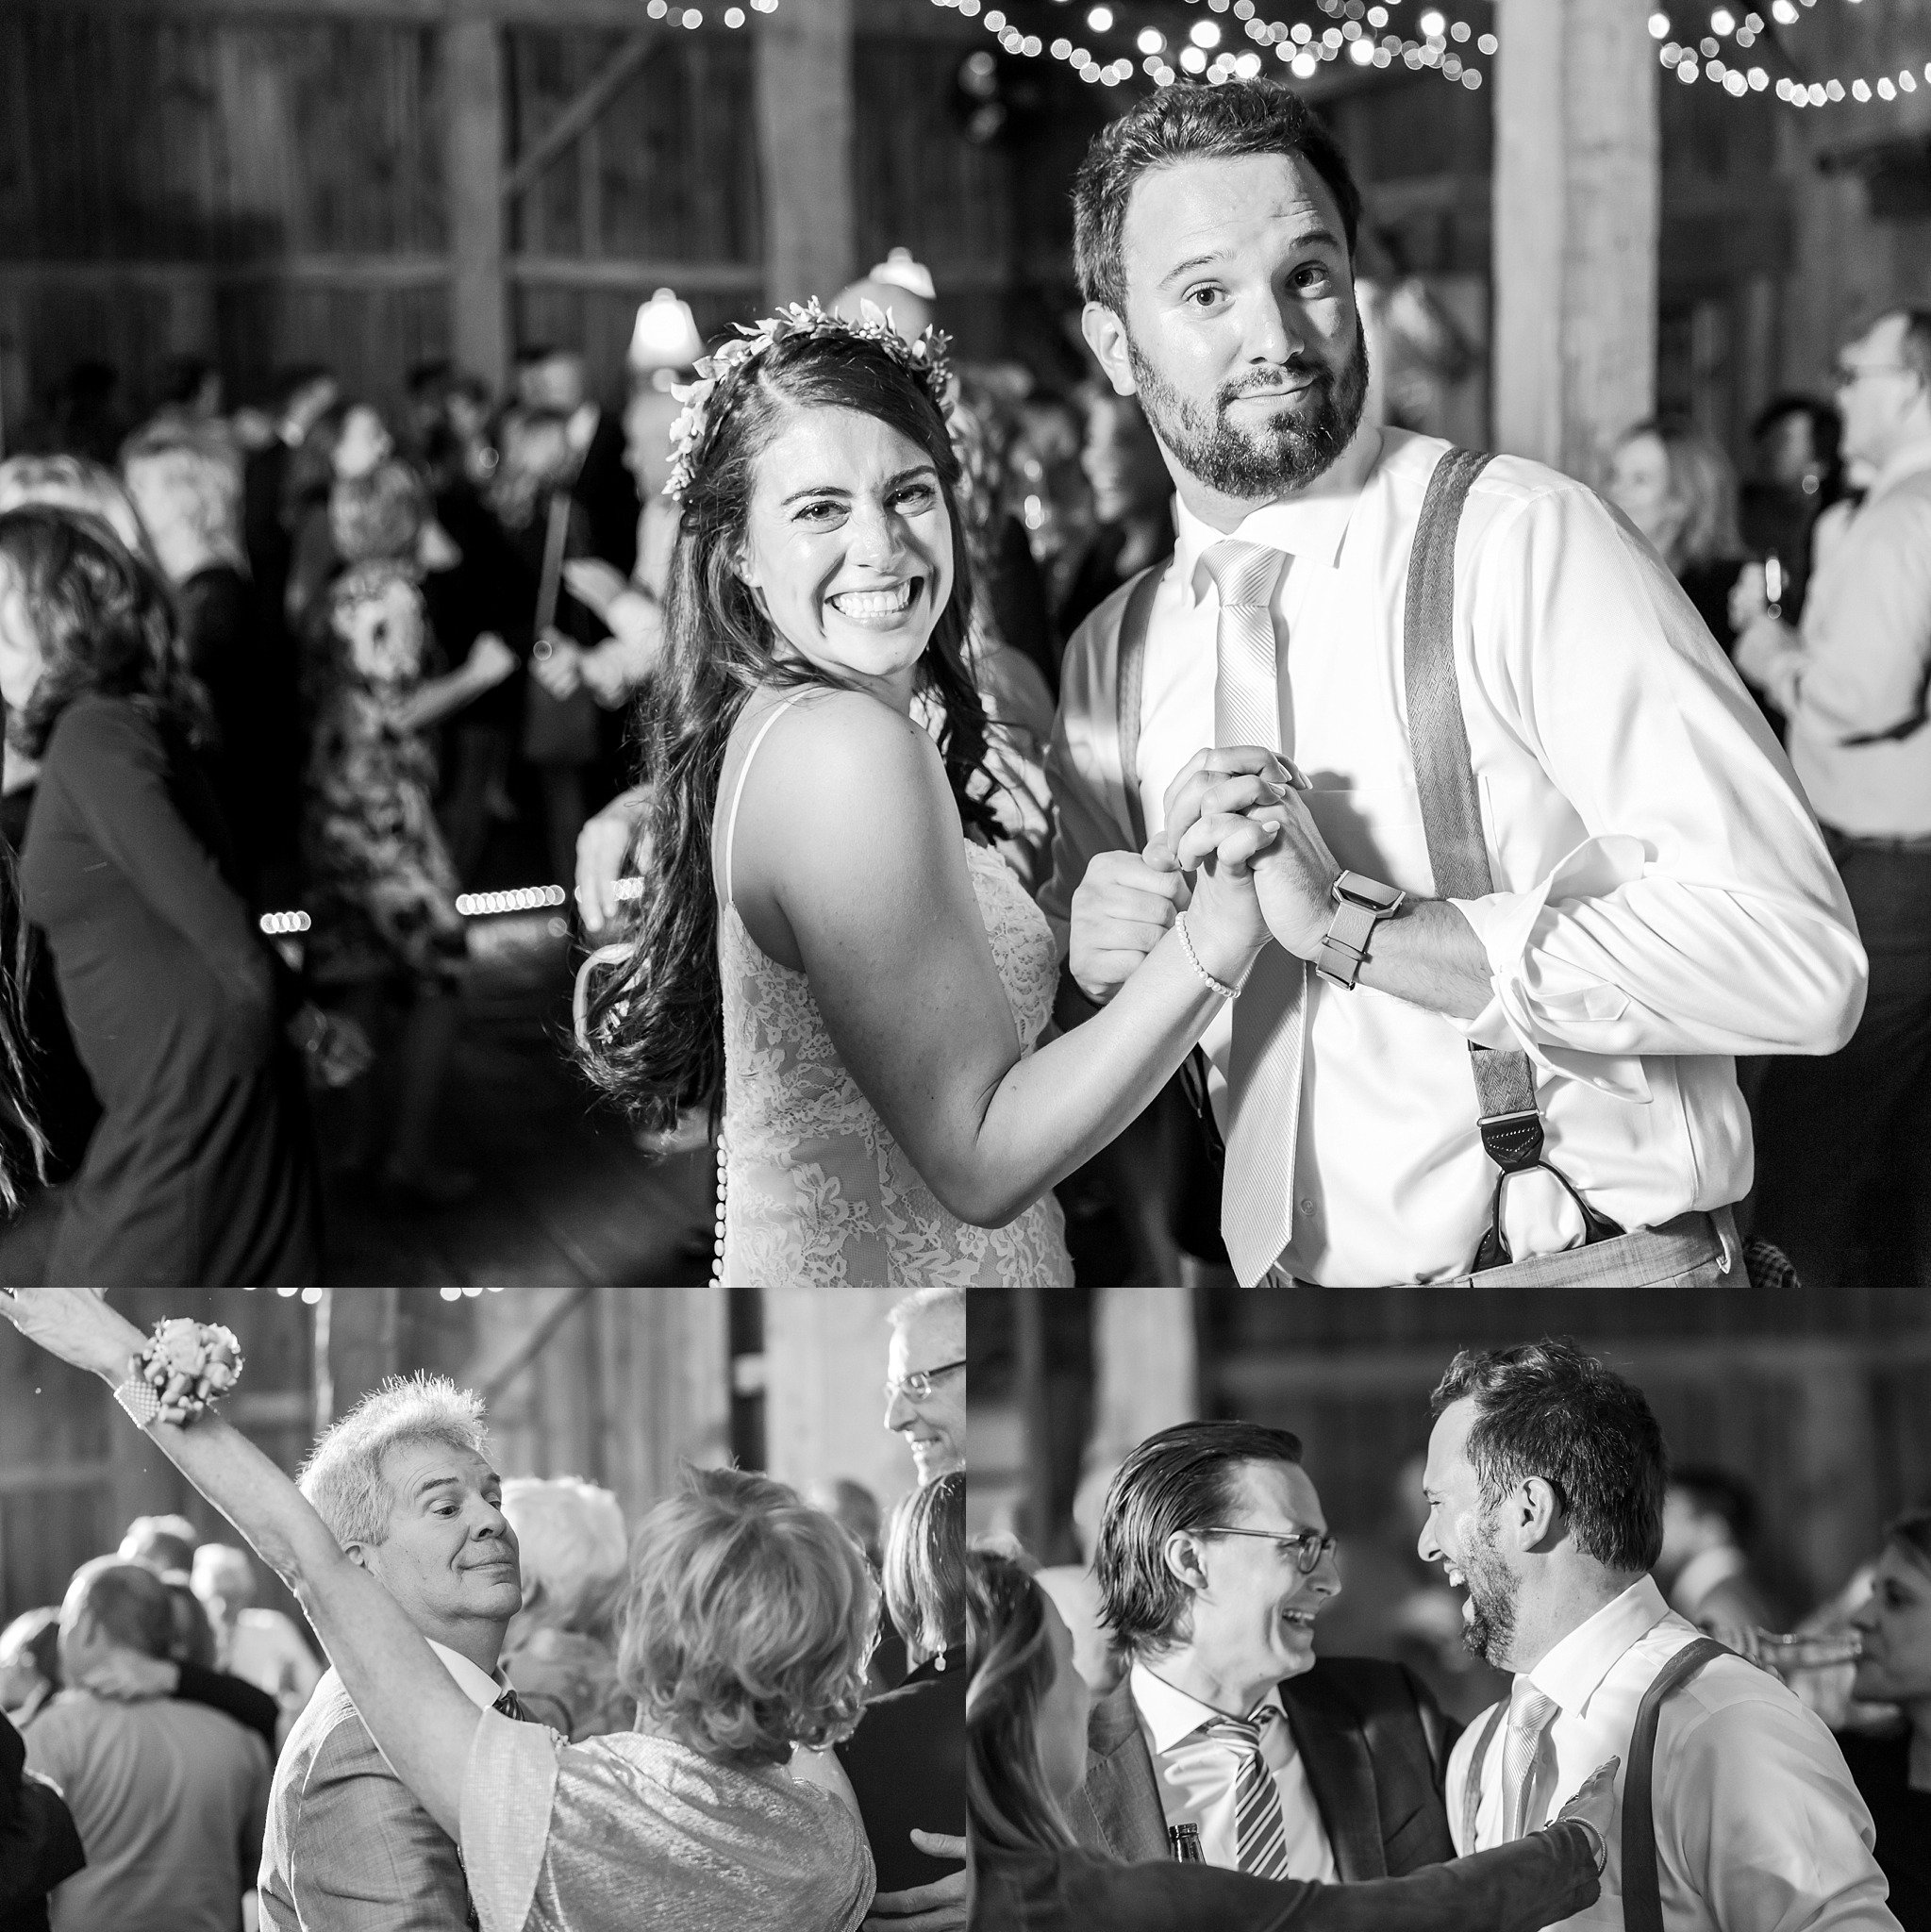 natural-rustic-wedding-photos-at-frutig-farms-the-valley-in-ann-arbor-michigan-by-courtney-carolyn-photography_0100.jpg